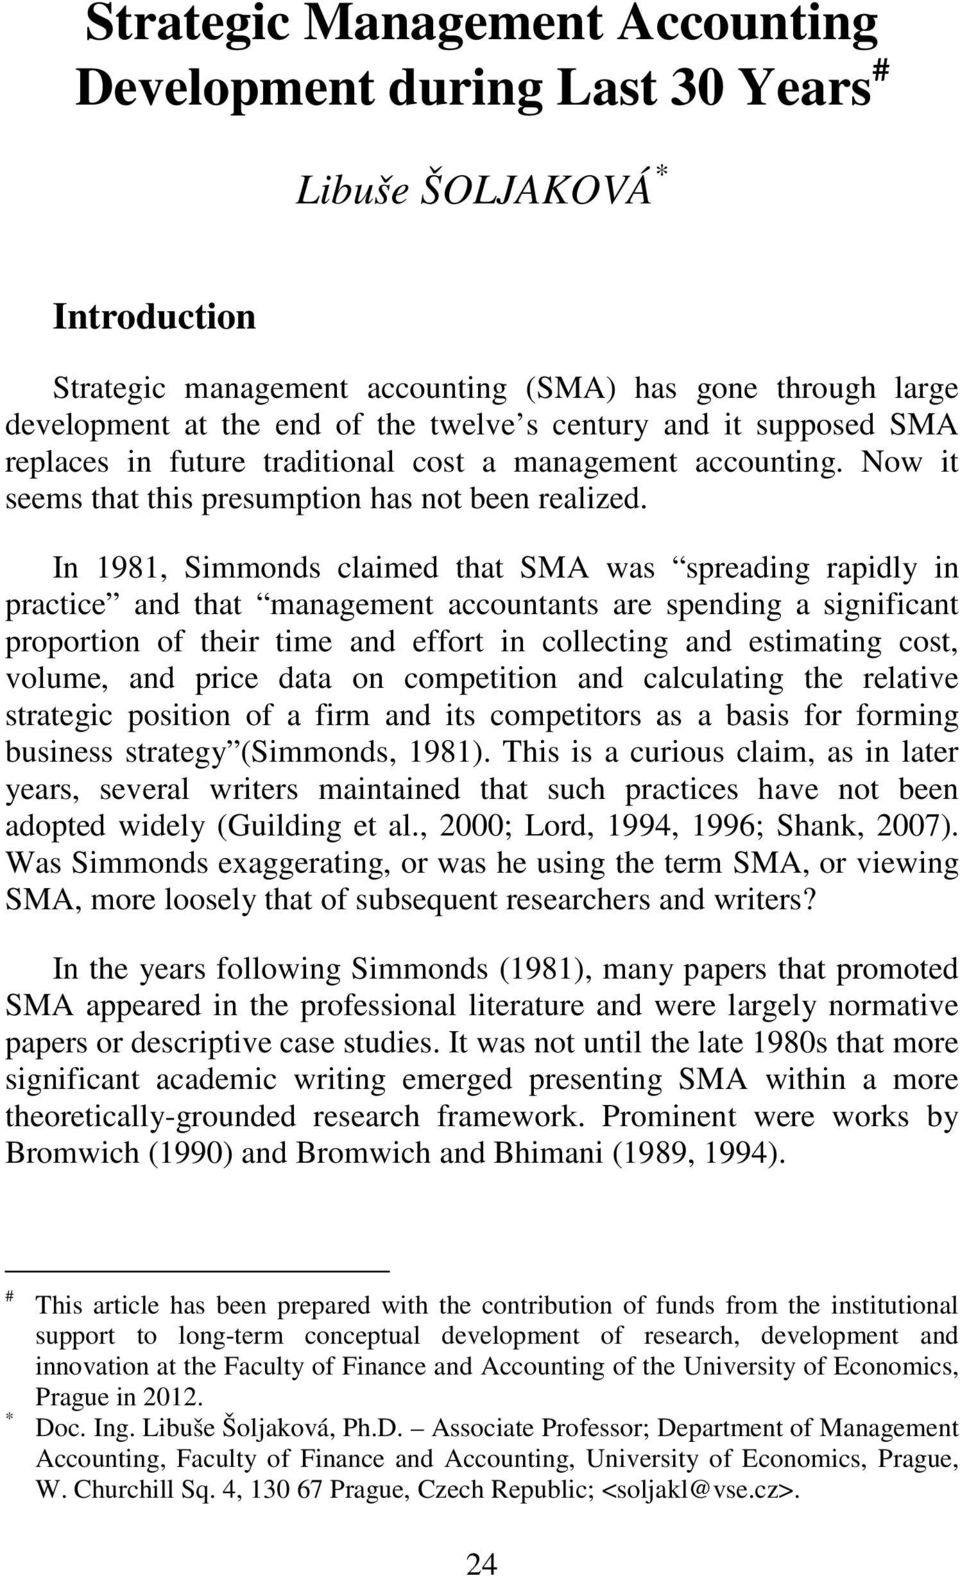 In 1981, Simmonds claimed that SMA was spreading rapidly in practice and that management accountants are spending a significant proportion of their time and effort in collecting and estimating cost,